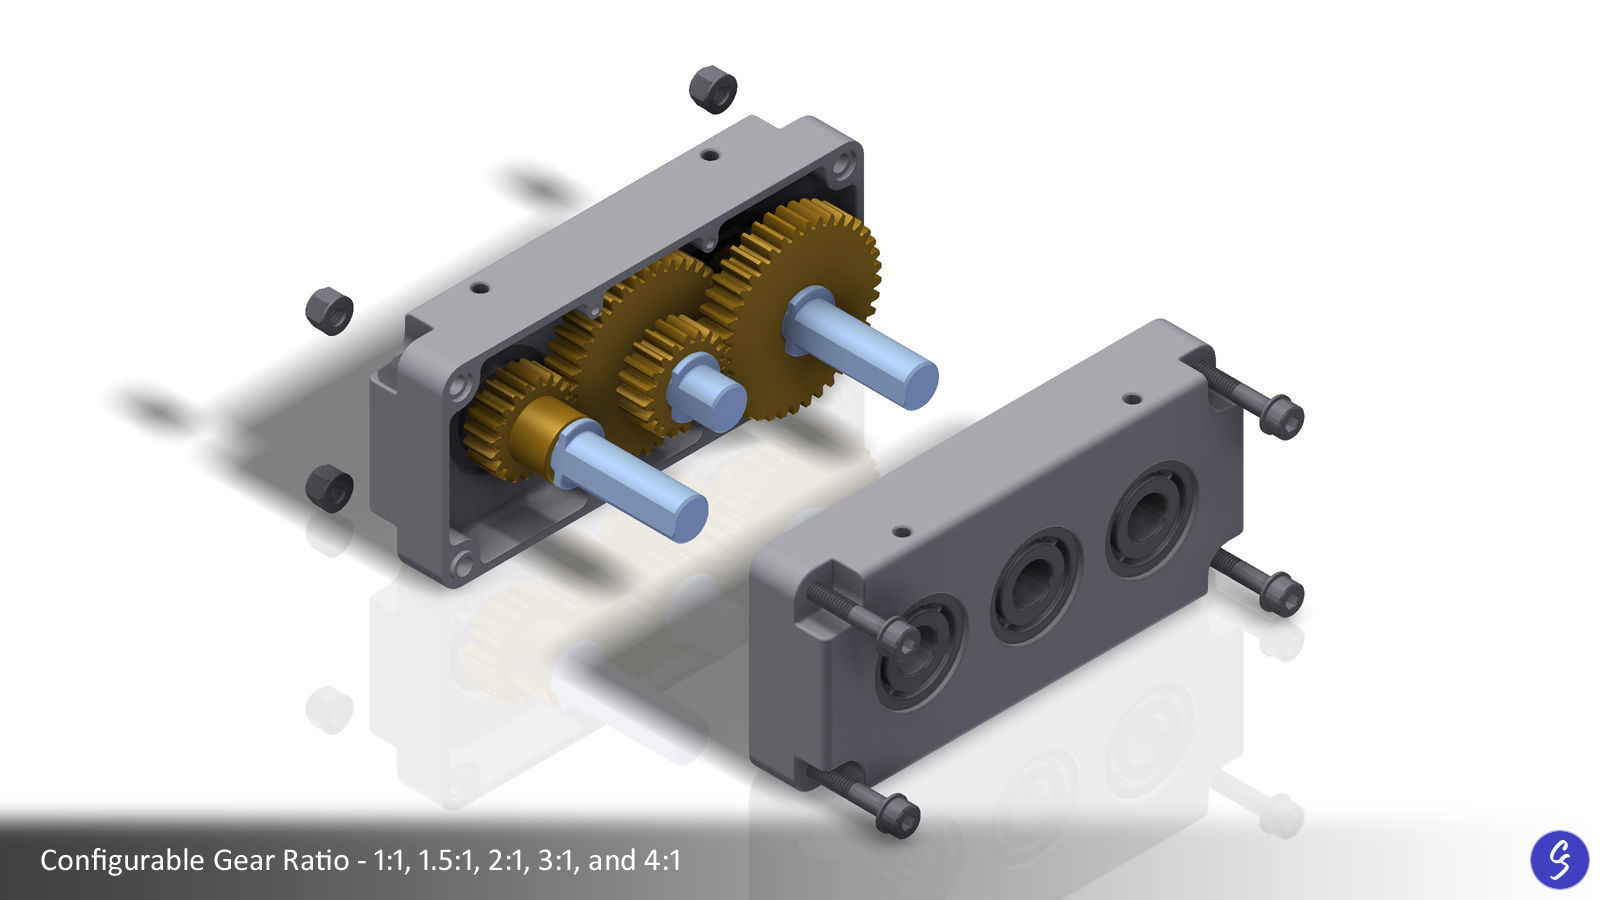 Configurable Two-Stage Gearbox